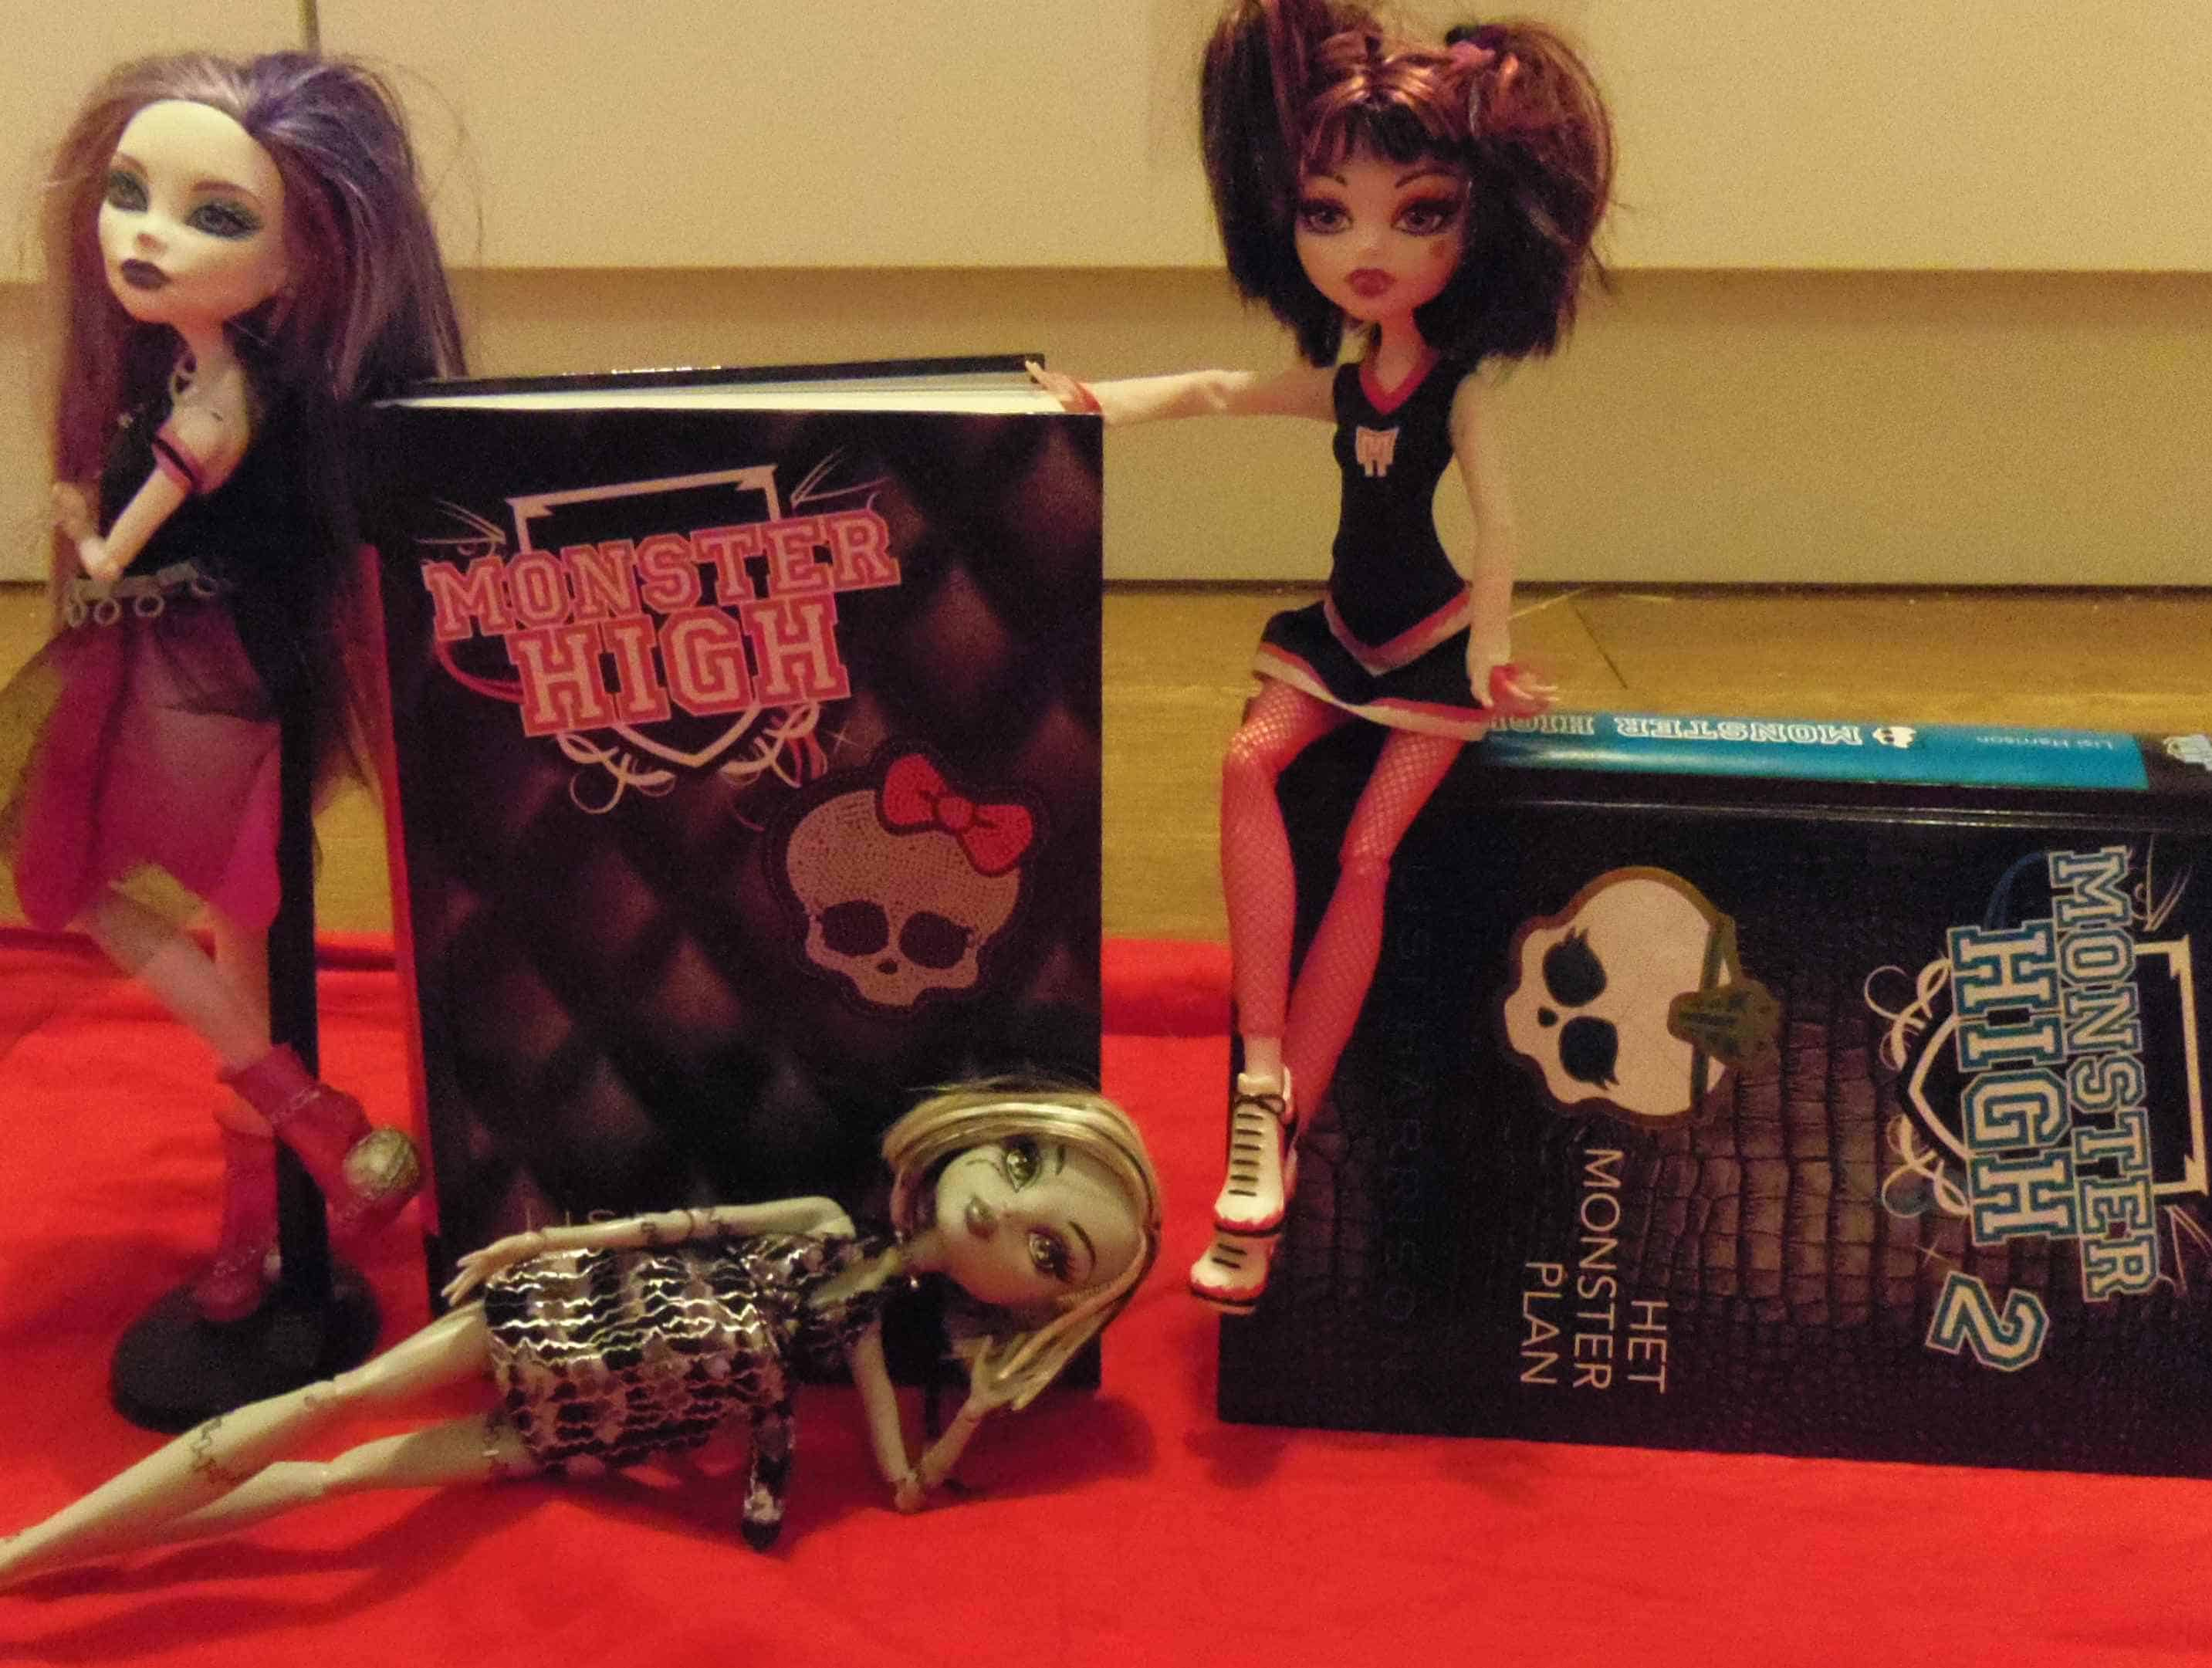 Books part 1 and 2, Spectra, Draculaura, Frankie lmtd edition (c) Srsck